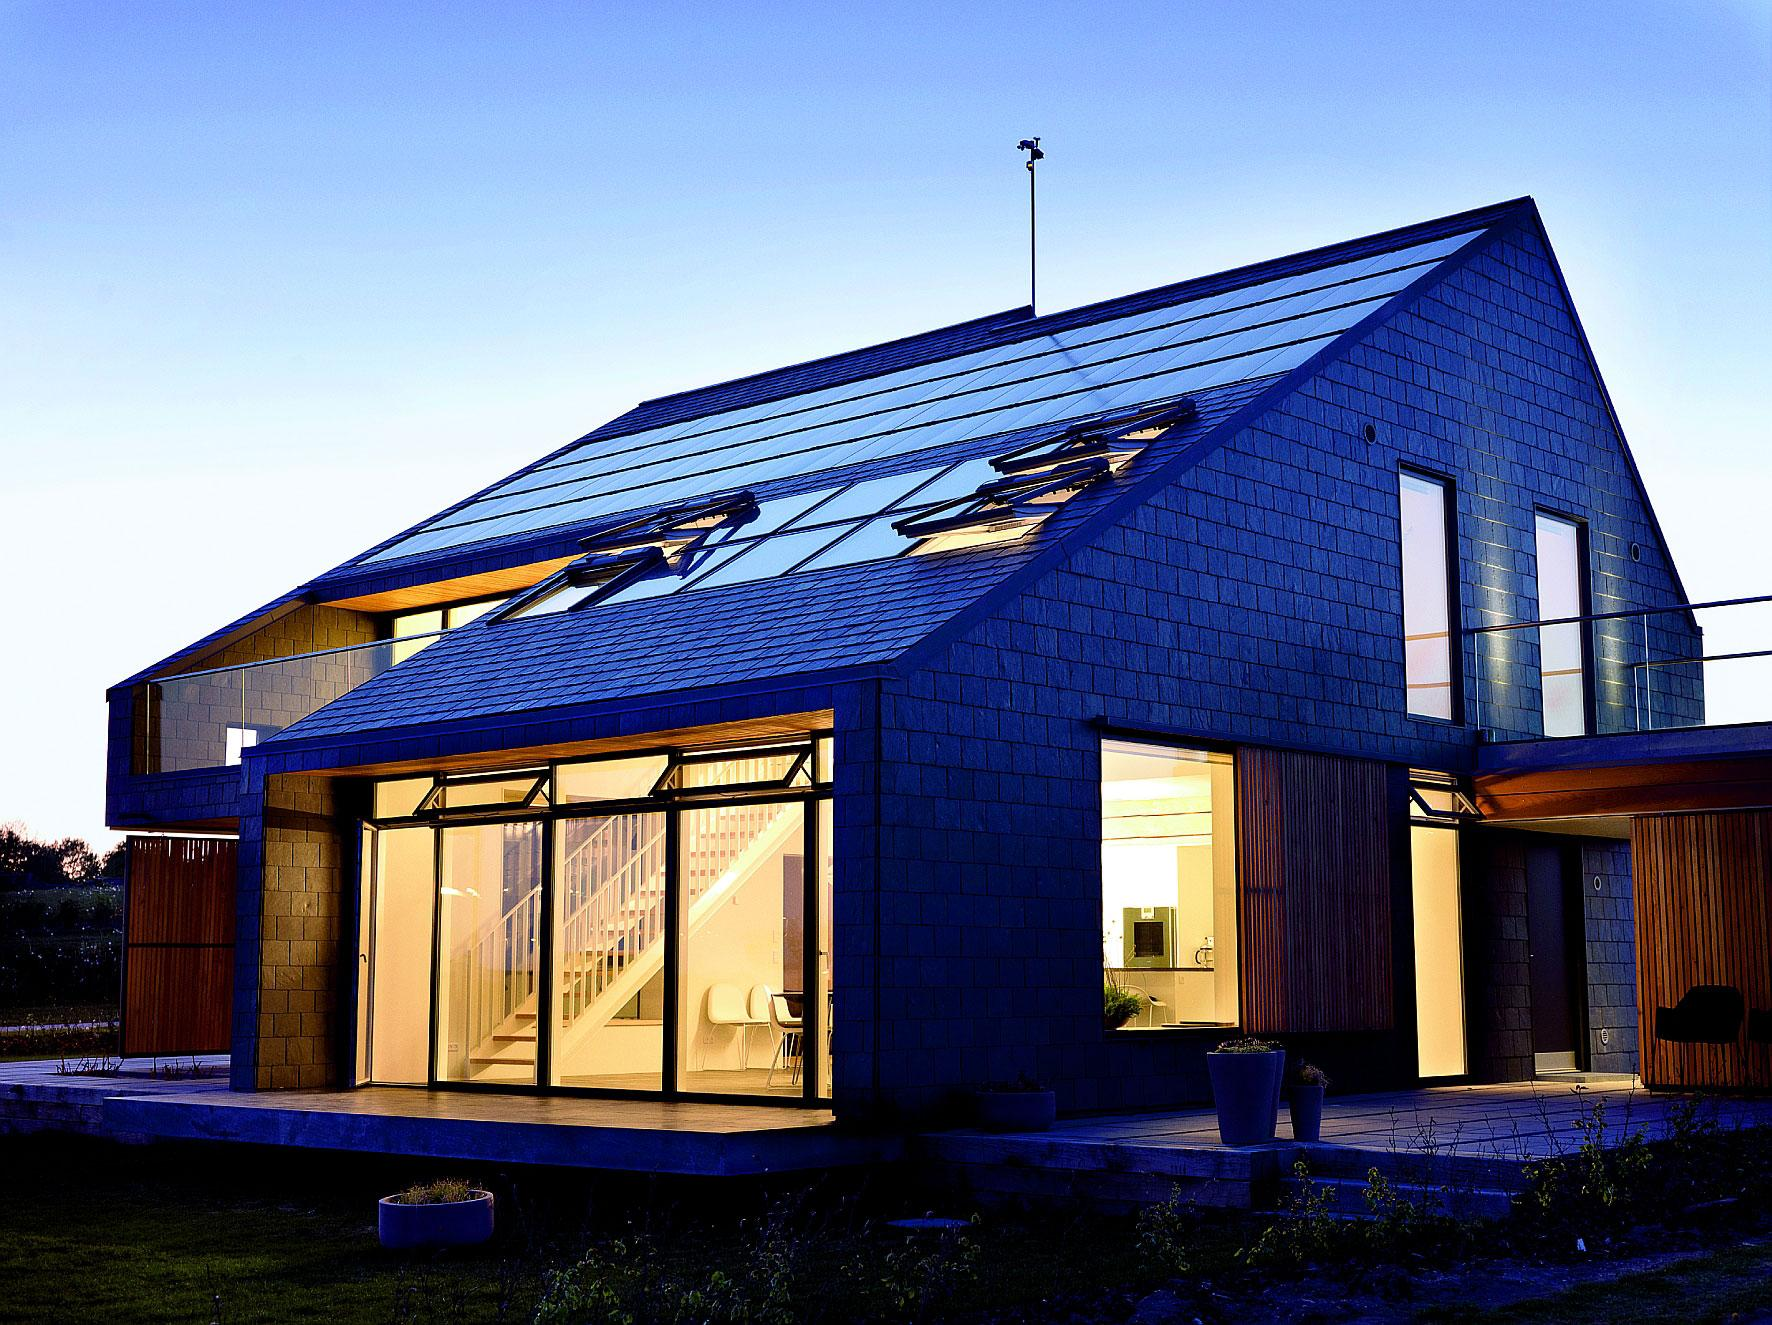 Energy efficient home a house in aarhus denmark for Economical home building